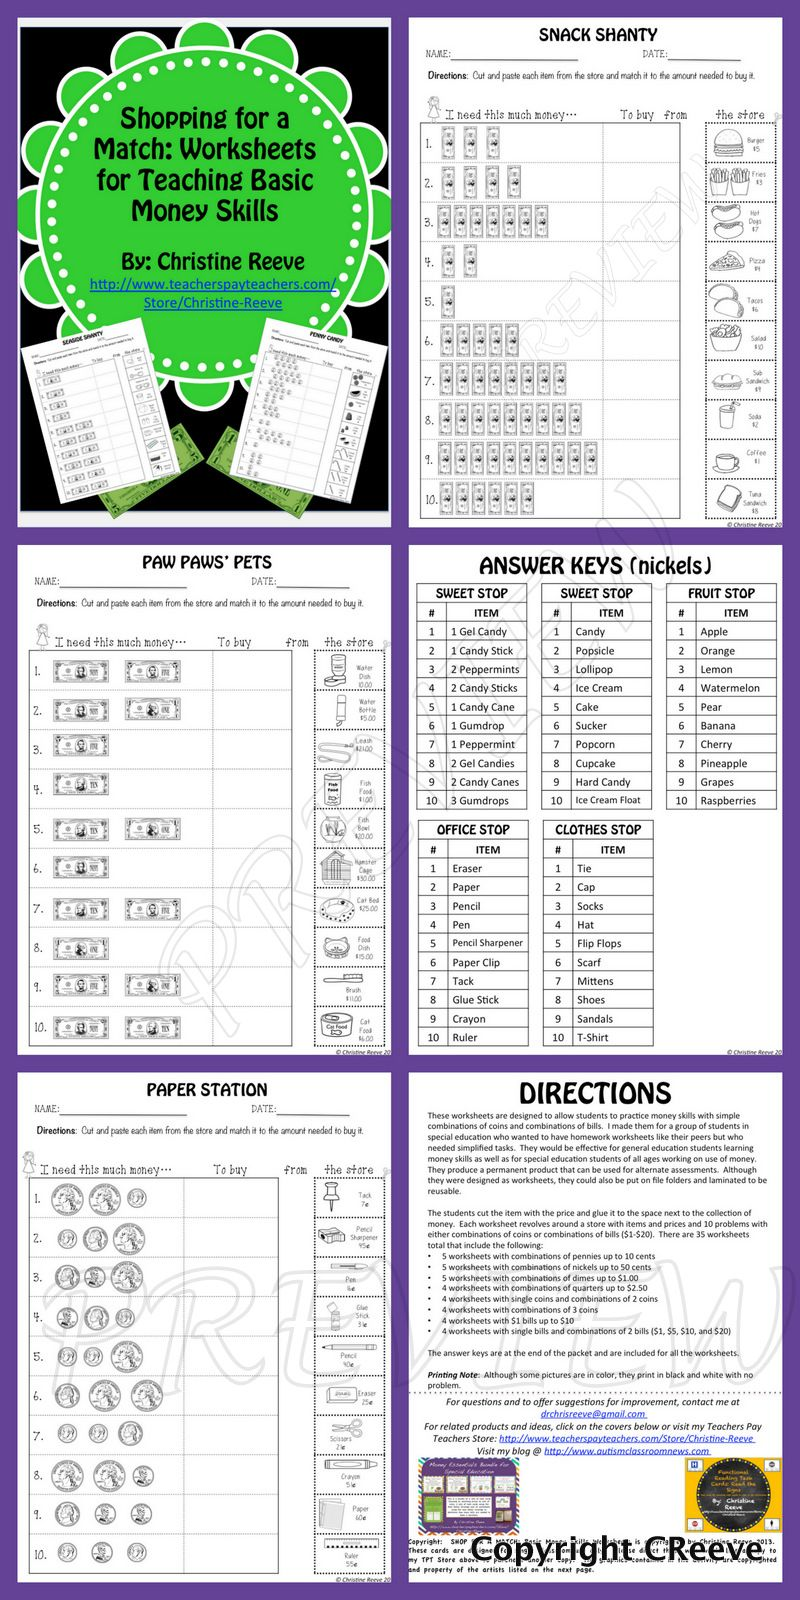 Money Skill Worksheets Shopping For A Match Special Ed Autism Money Skills Life Skills Curriculum Special Education Math [ 1600 x 800 Pixel ]